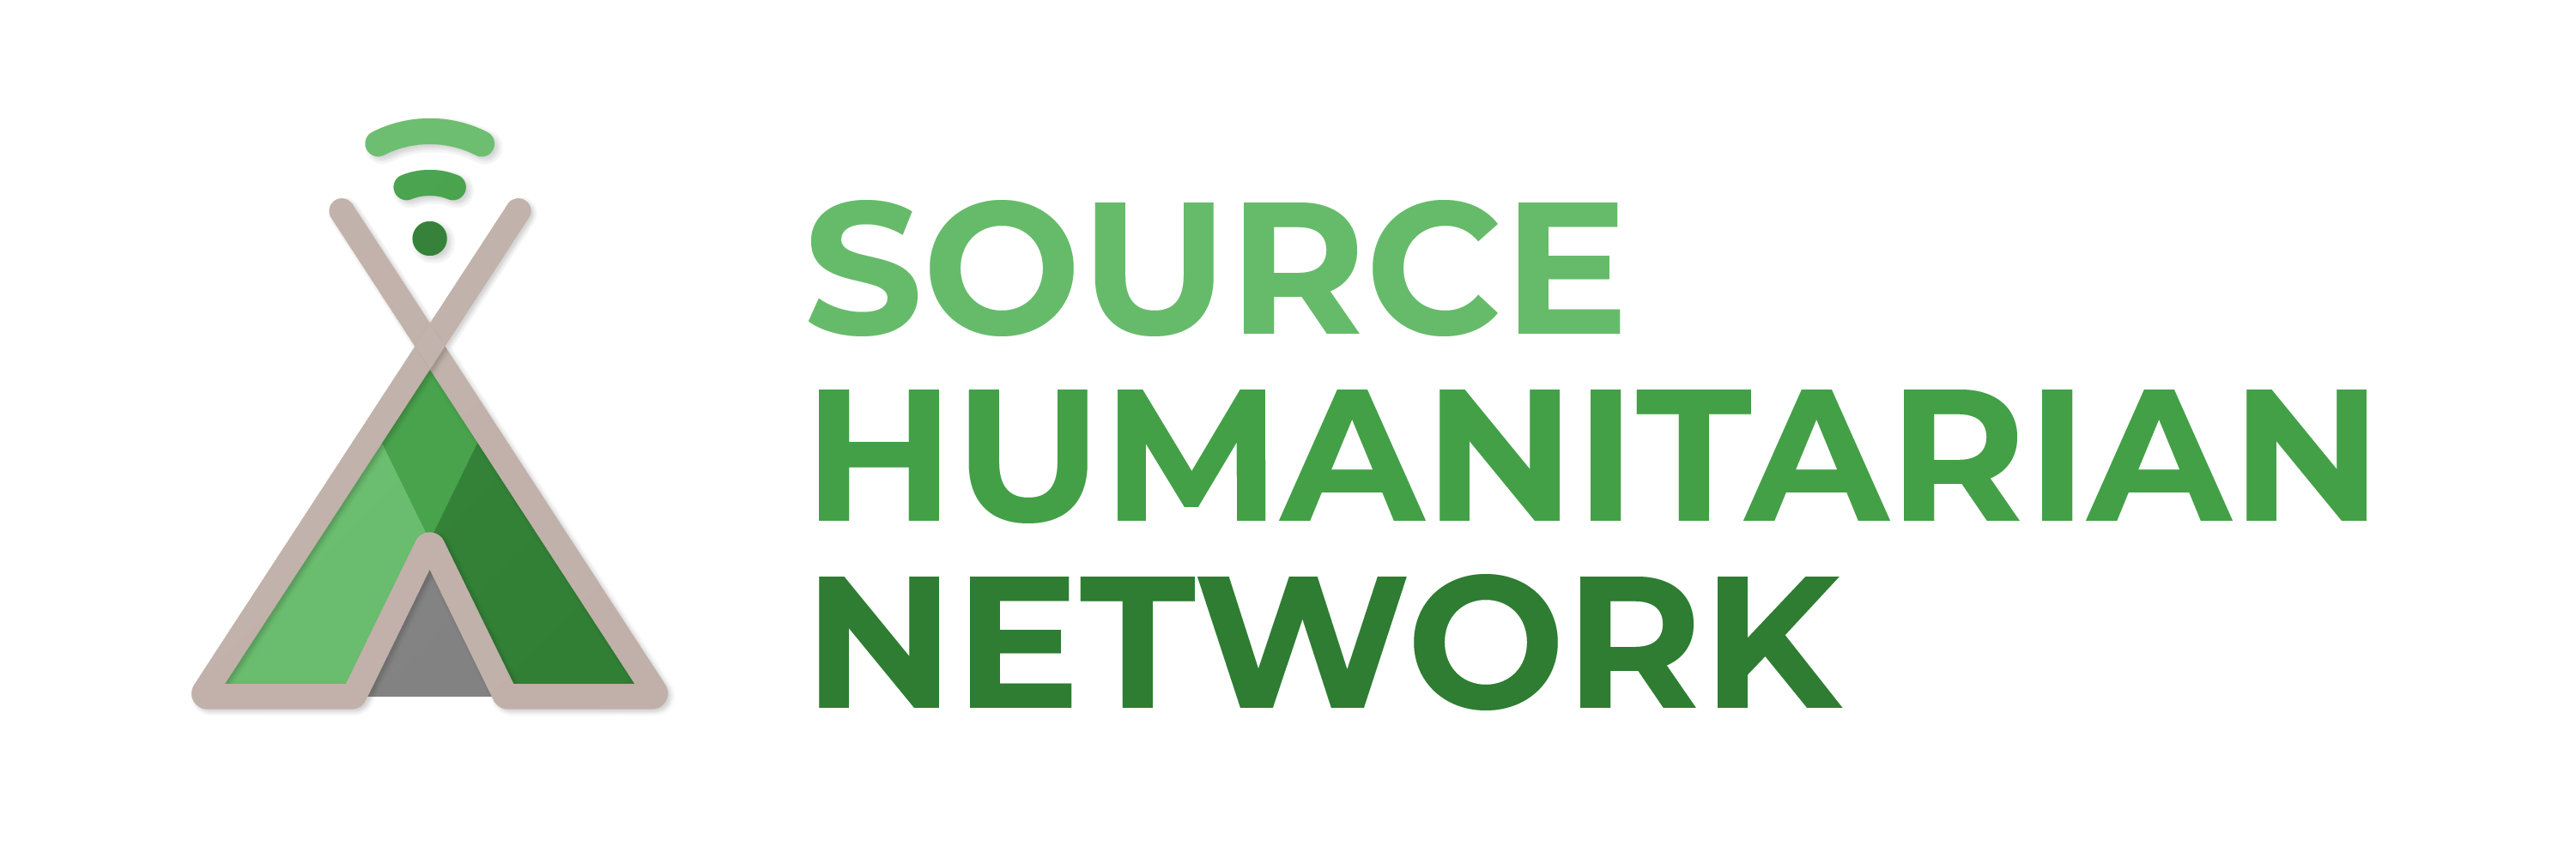 Source Humanitarian Network